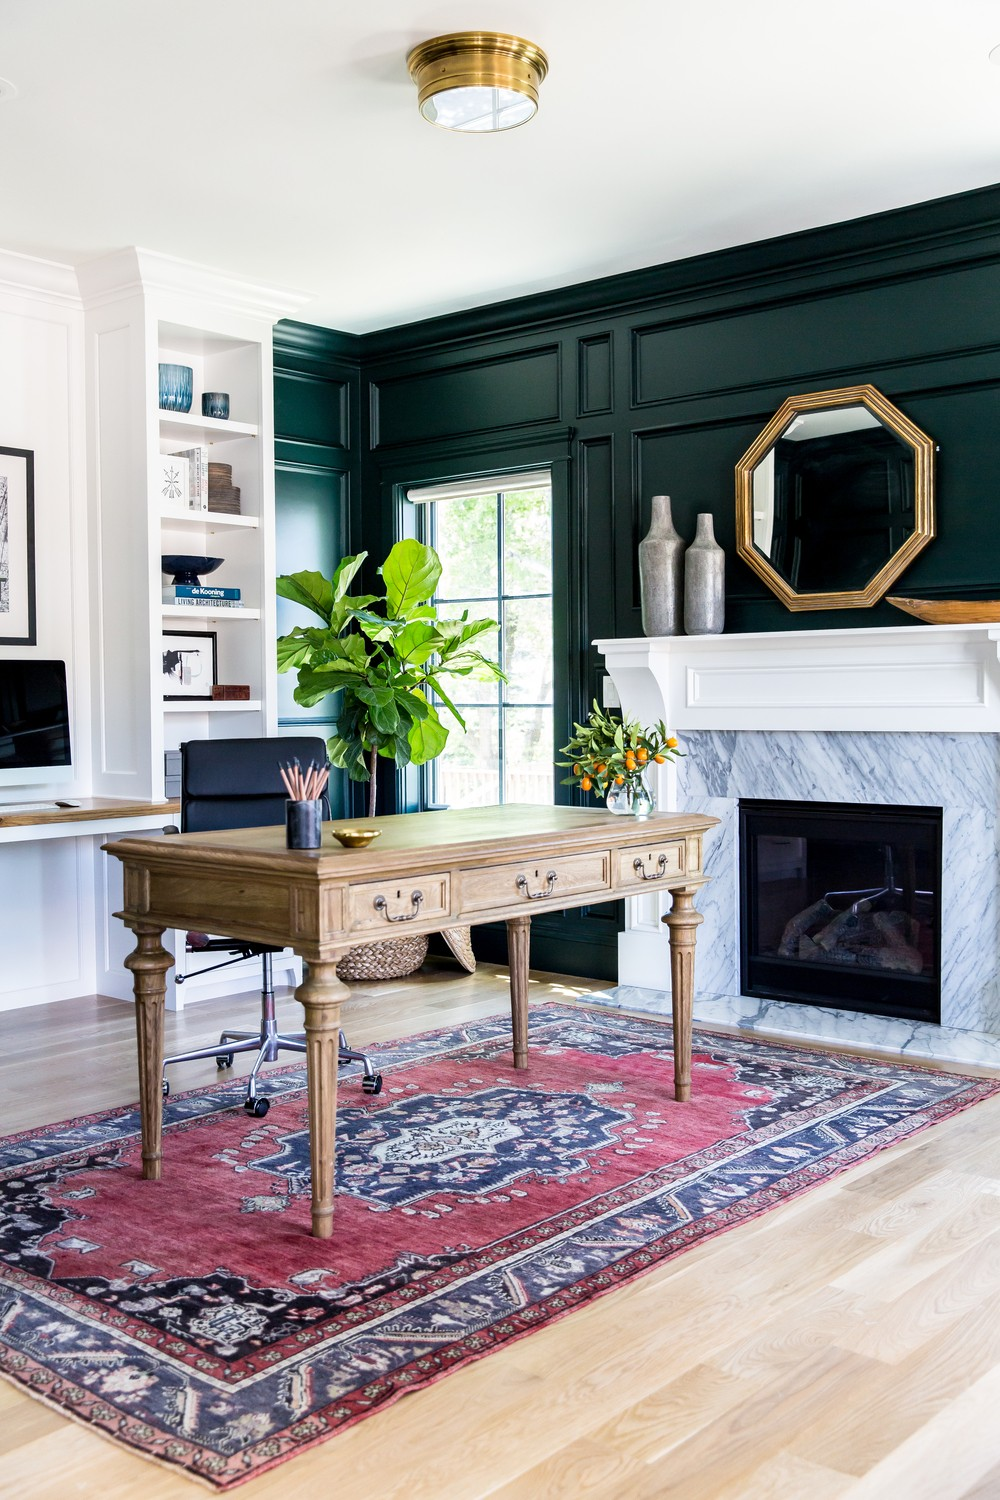 Green-black+paneled+walls+and+marble+fireplace+__+Studio+McGee-1.jpg